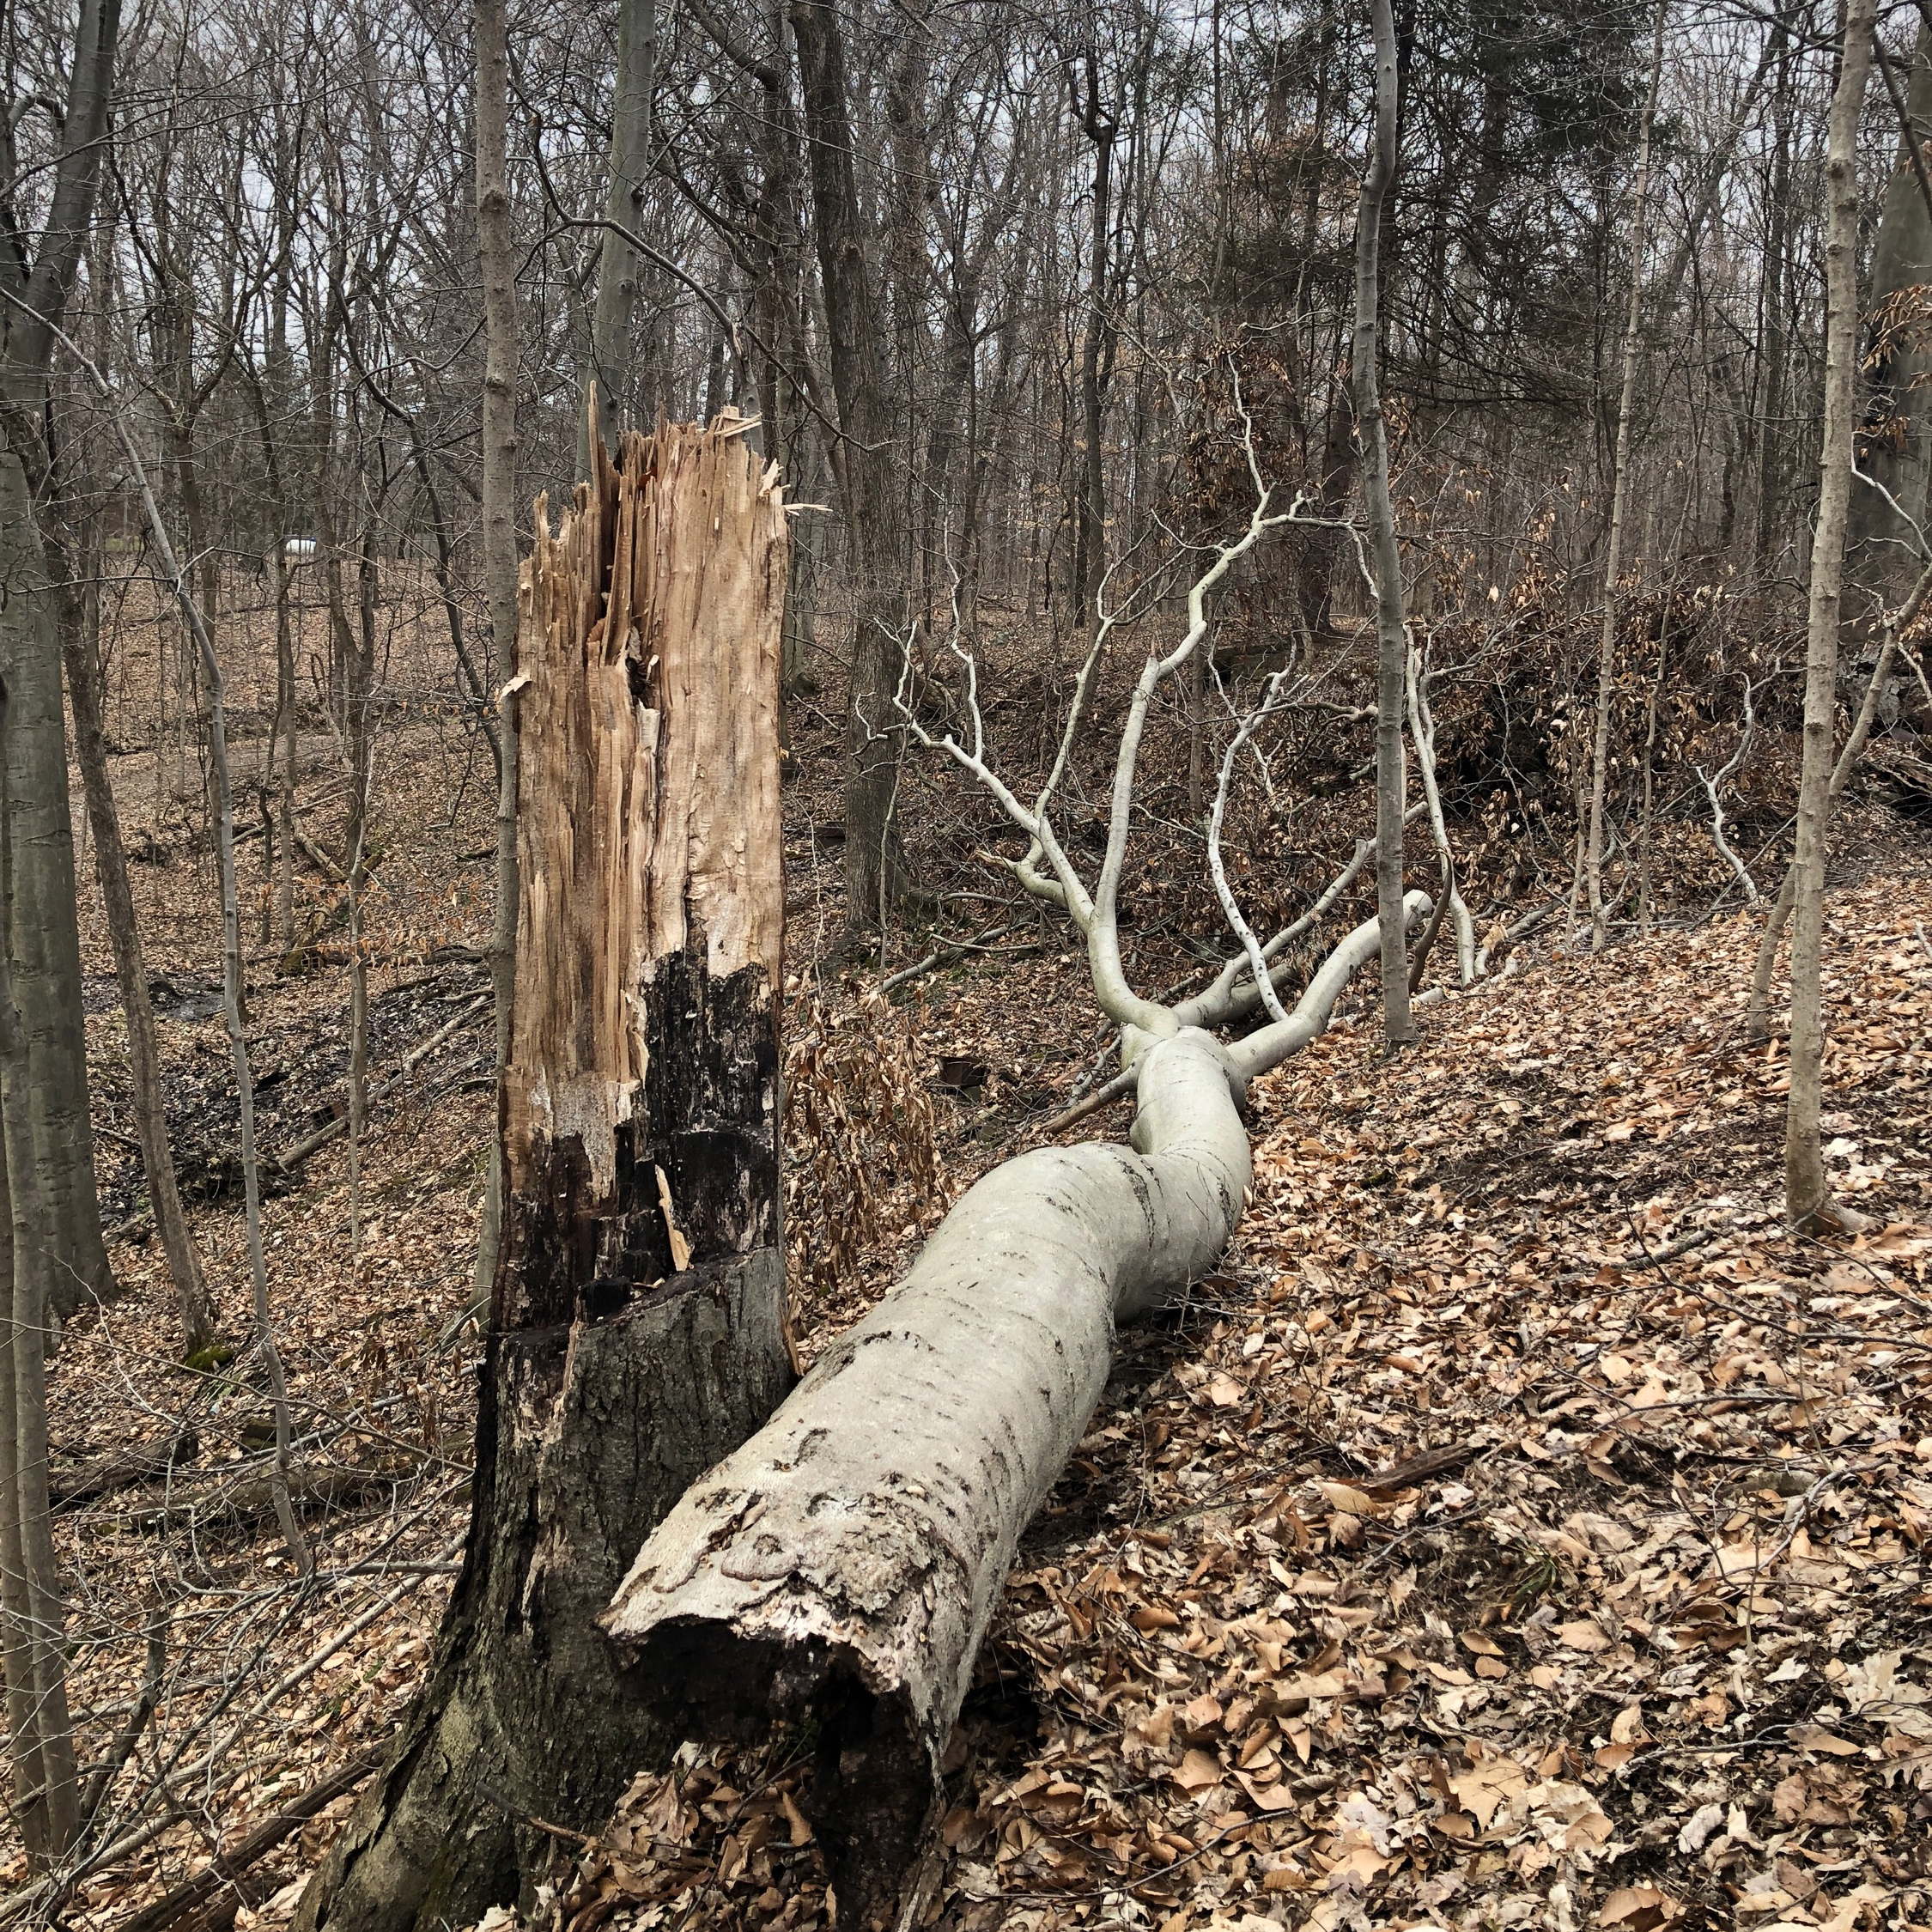 Our American beech tree that recently succumbed to high winds